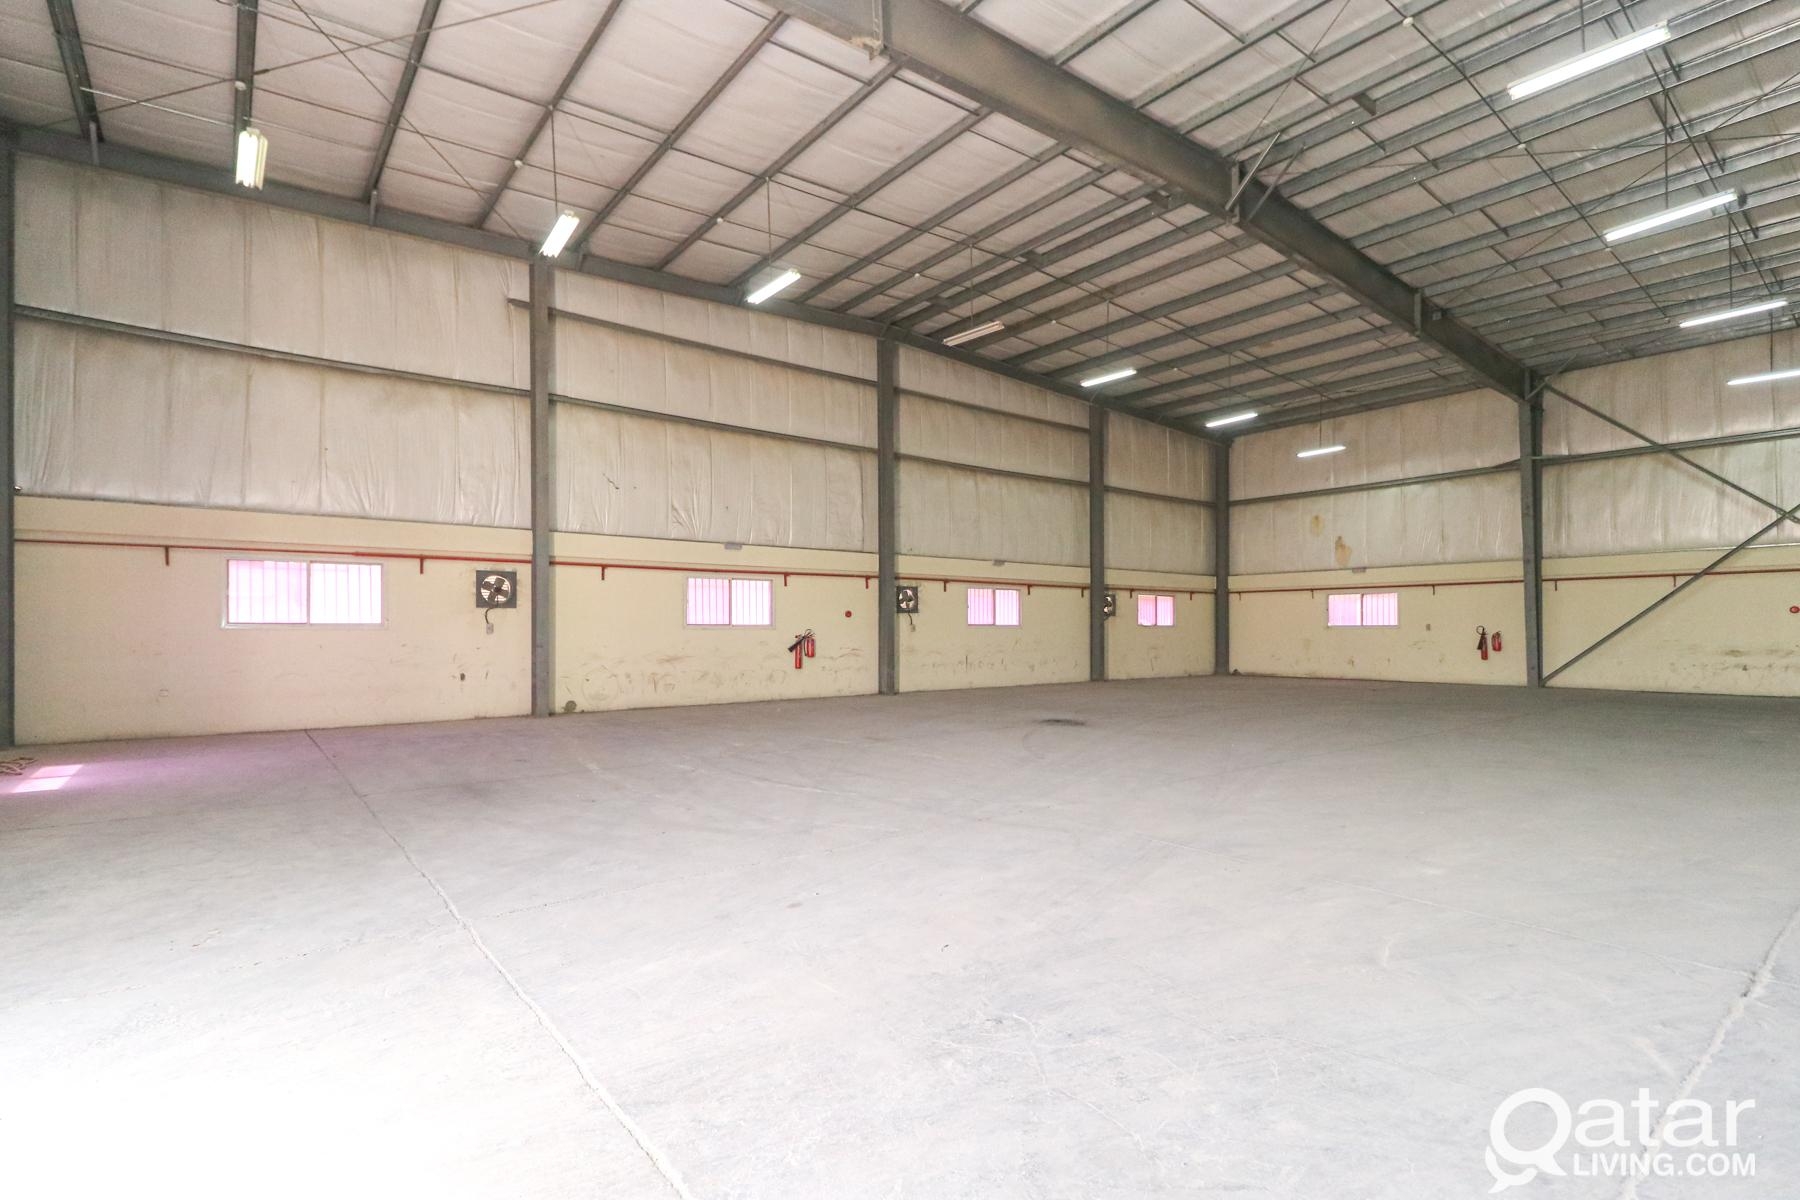 1500 Sqm General Warehouse in Industrial Area